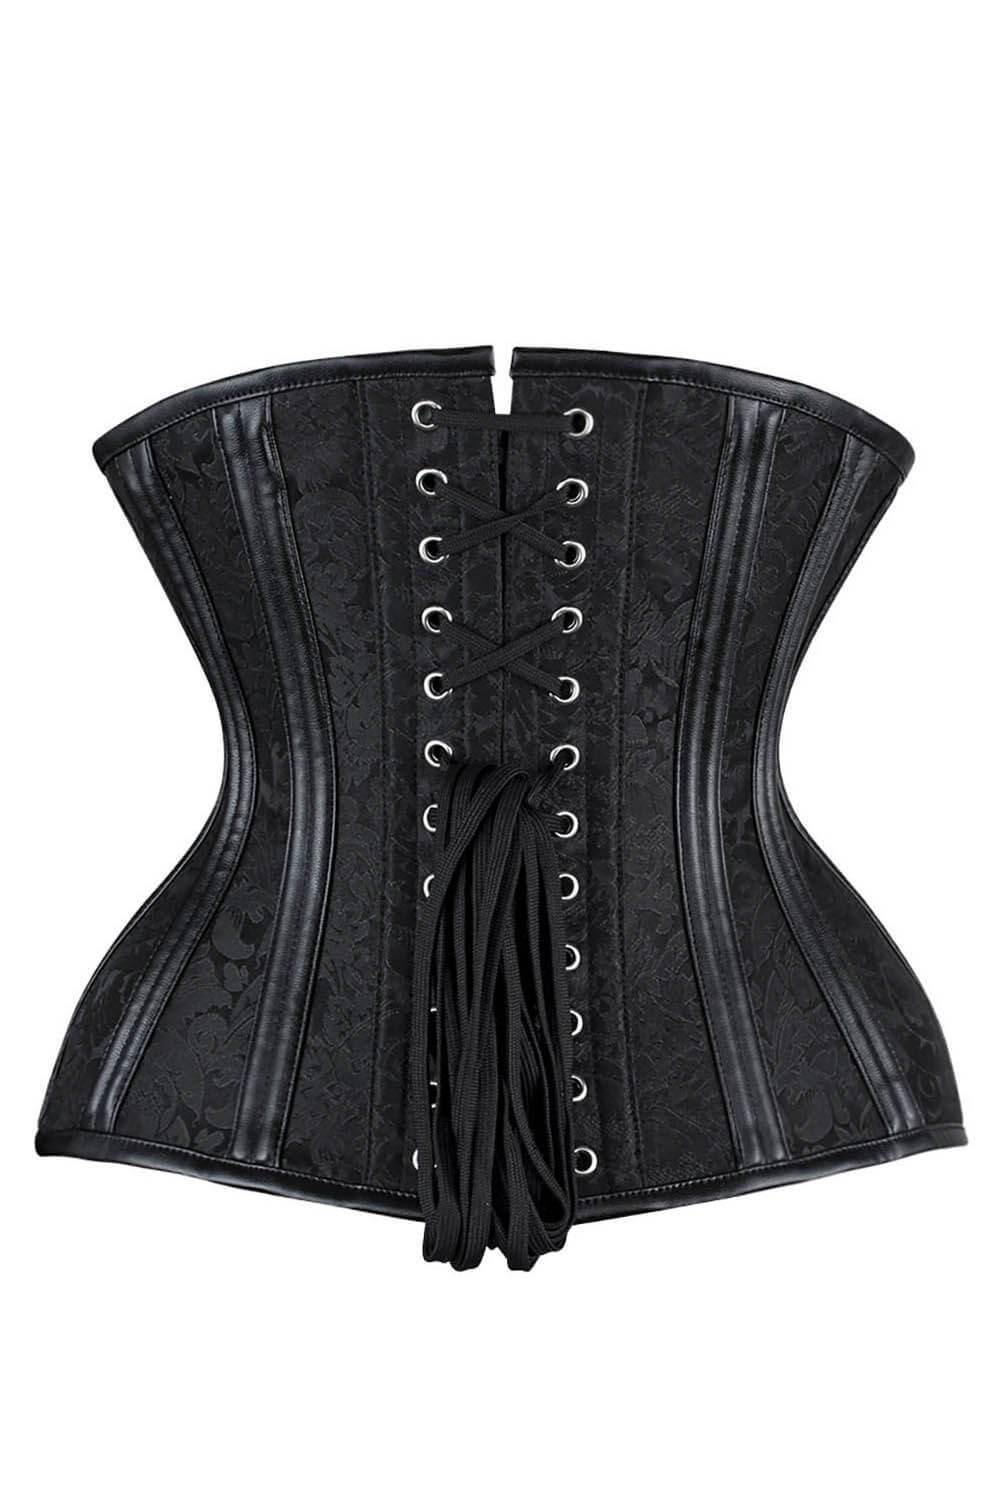 Funanya New Curvy Waist Trainer with Buckle at Front